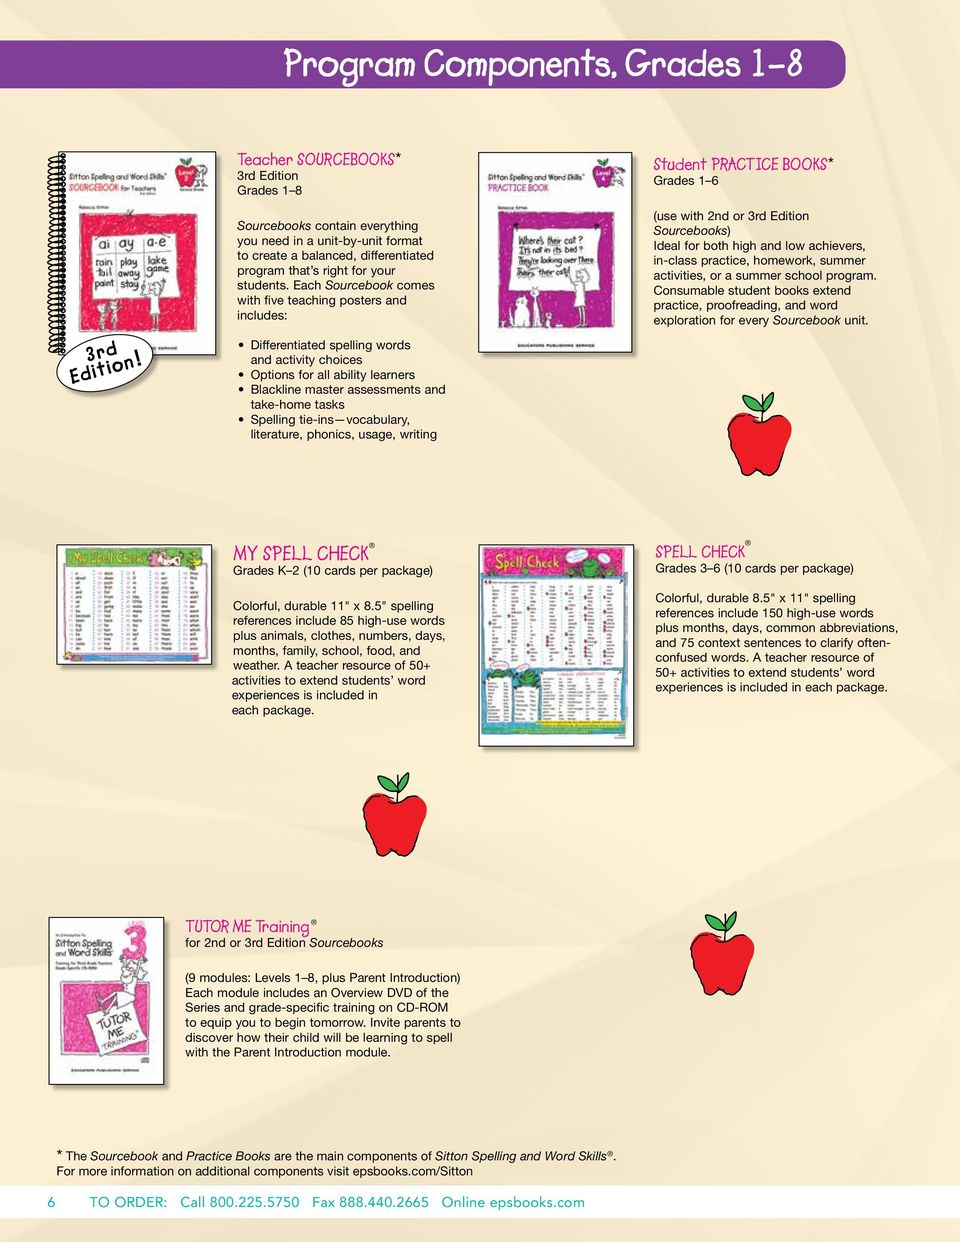 Each Sourcebook comes with five teaching posters and includes: Differentiated spelling words and activity choices Options for all ability learners Blackline master assessments and take-home tasks